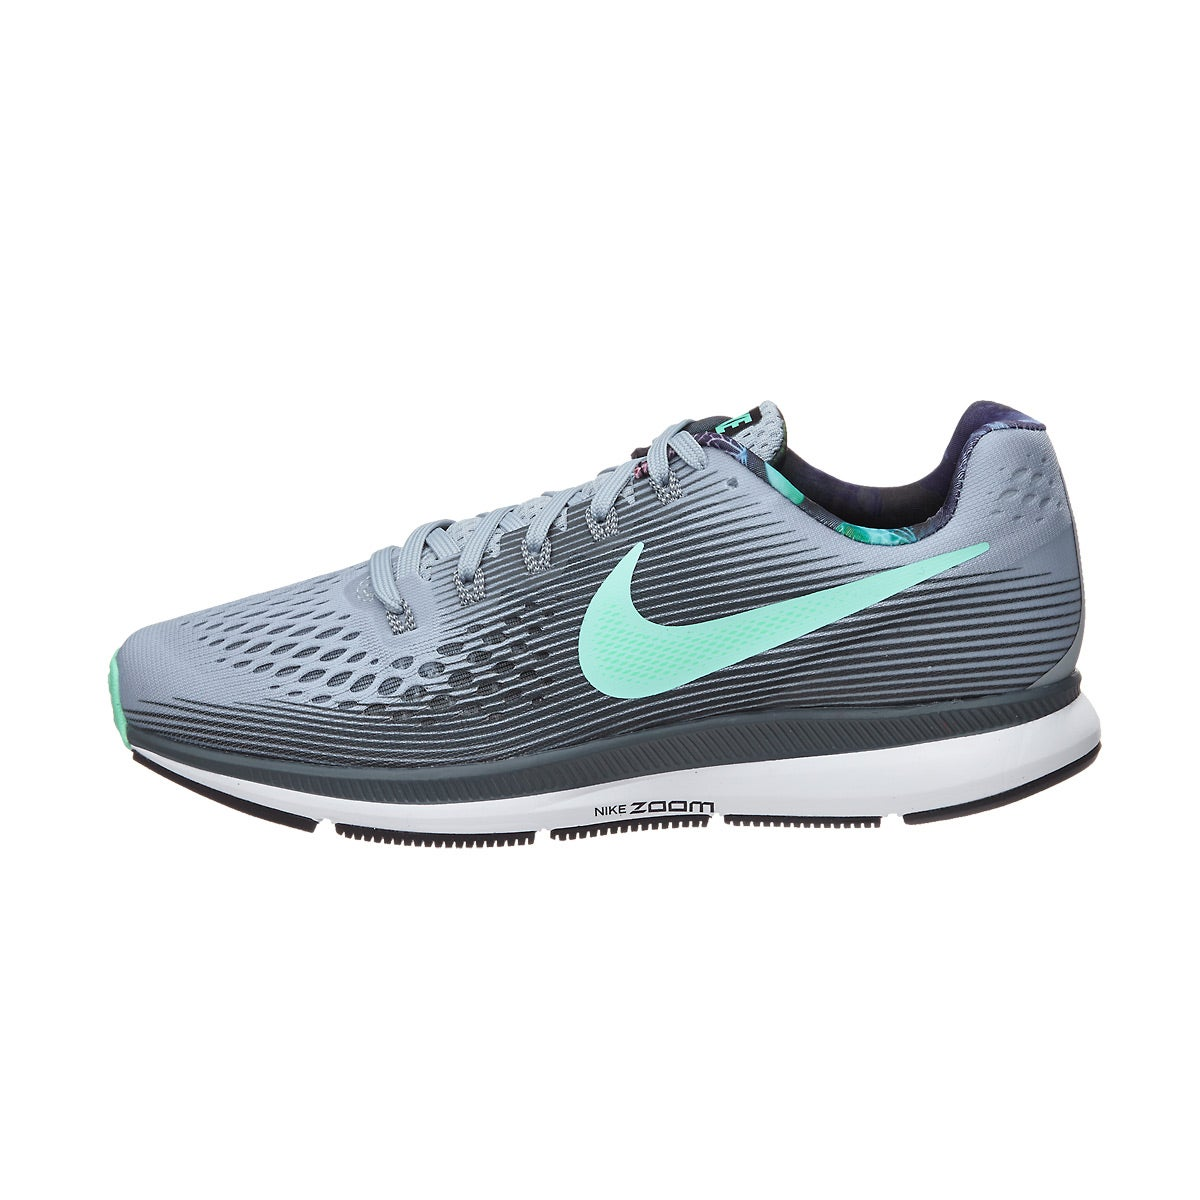 Nike Solstice Shoes